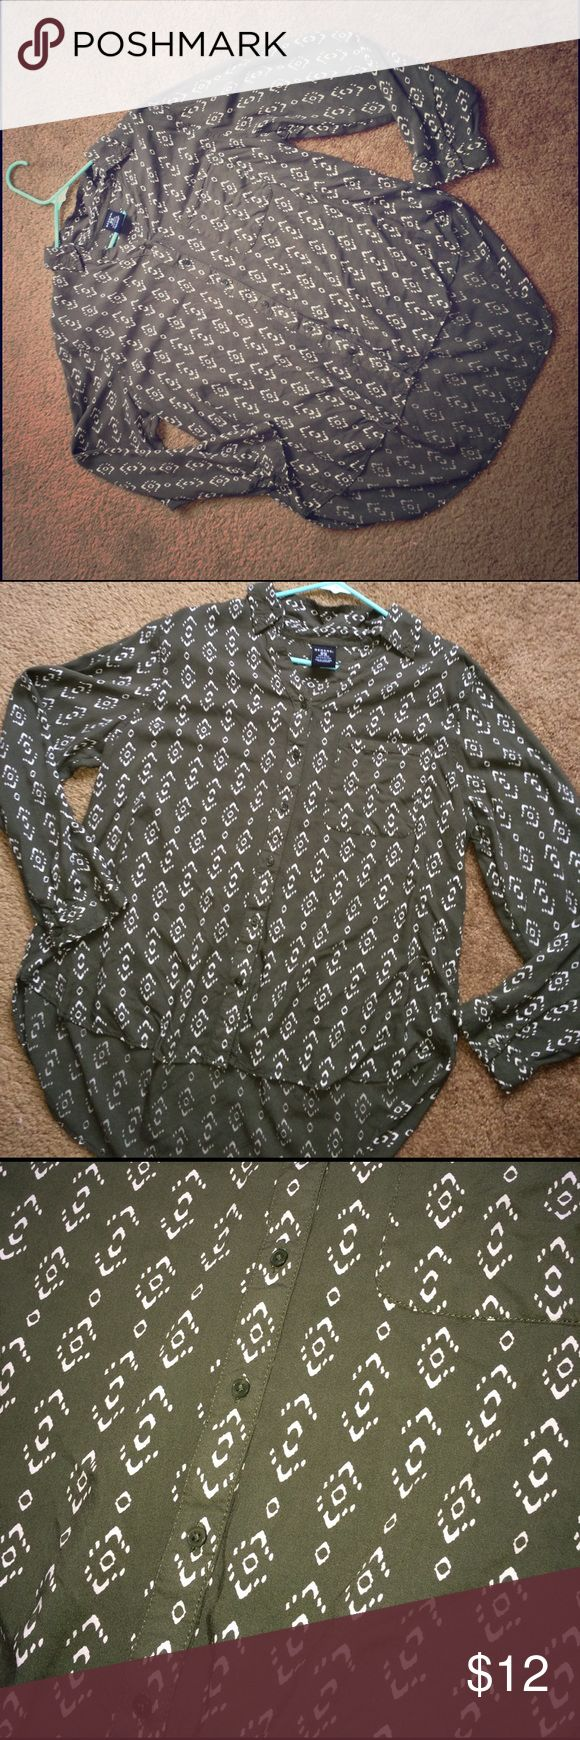 Green Aztec blouse Size XL but fits more like a large. Worn once. Super soft. Olive green in color. George Tops Blouses